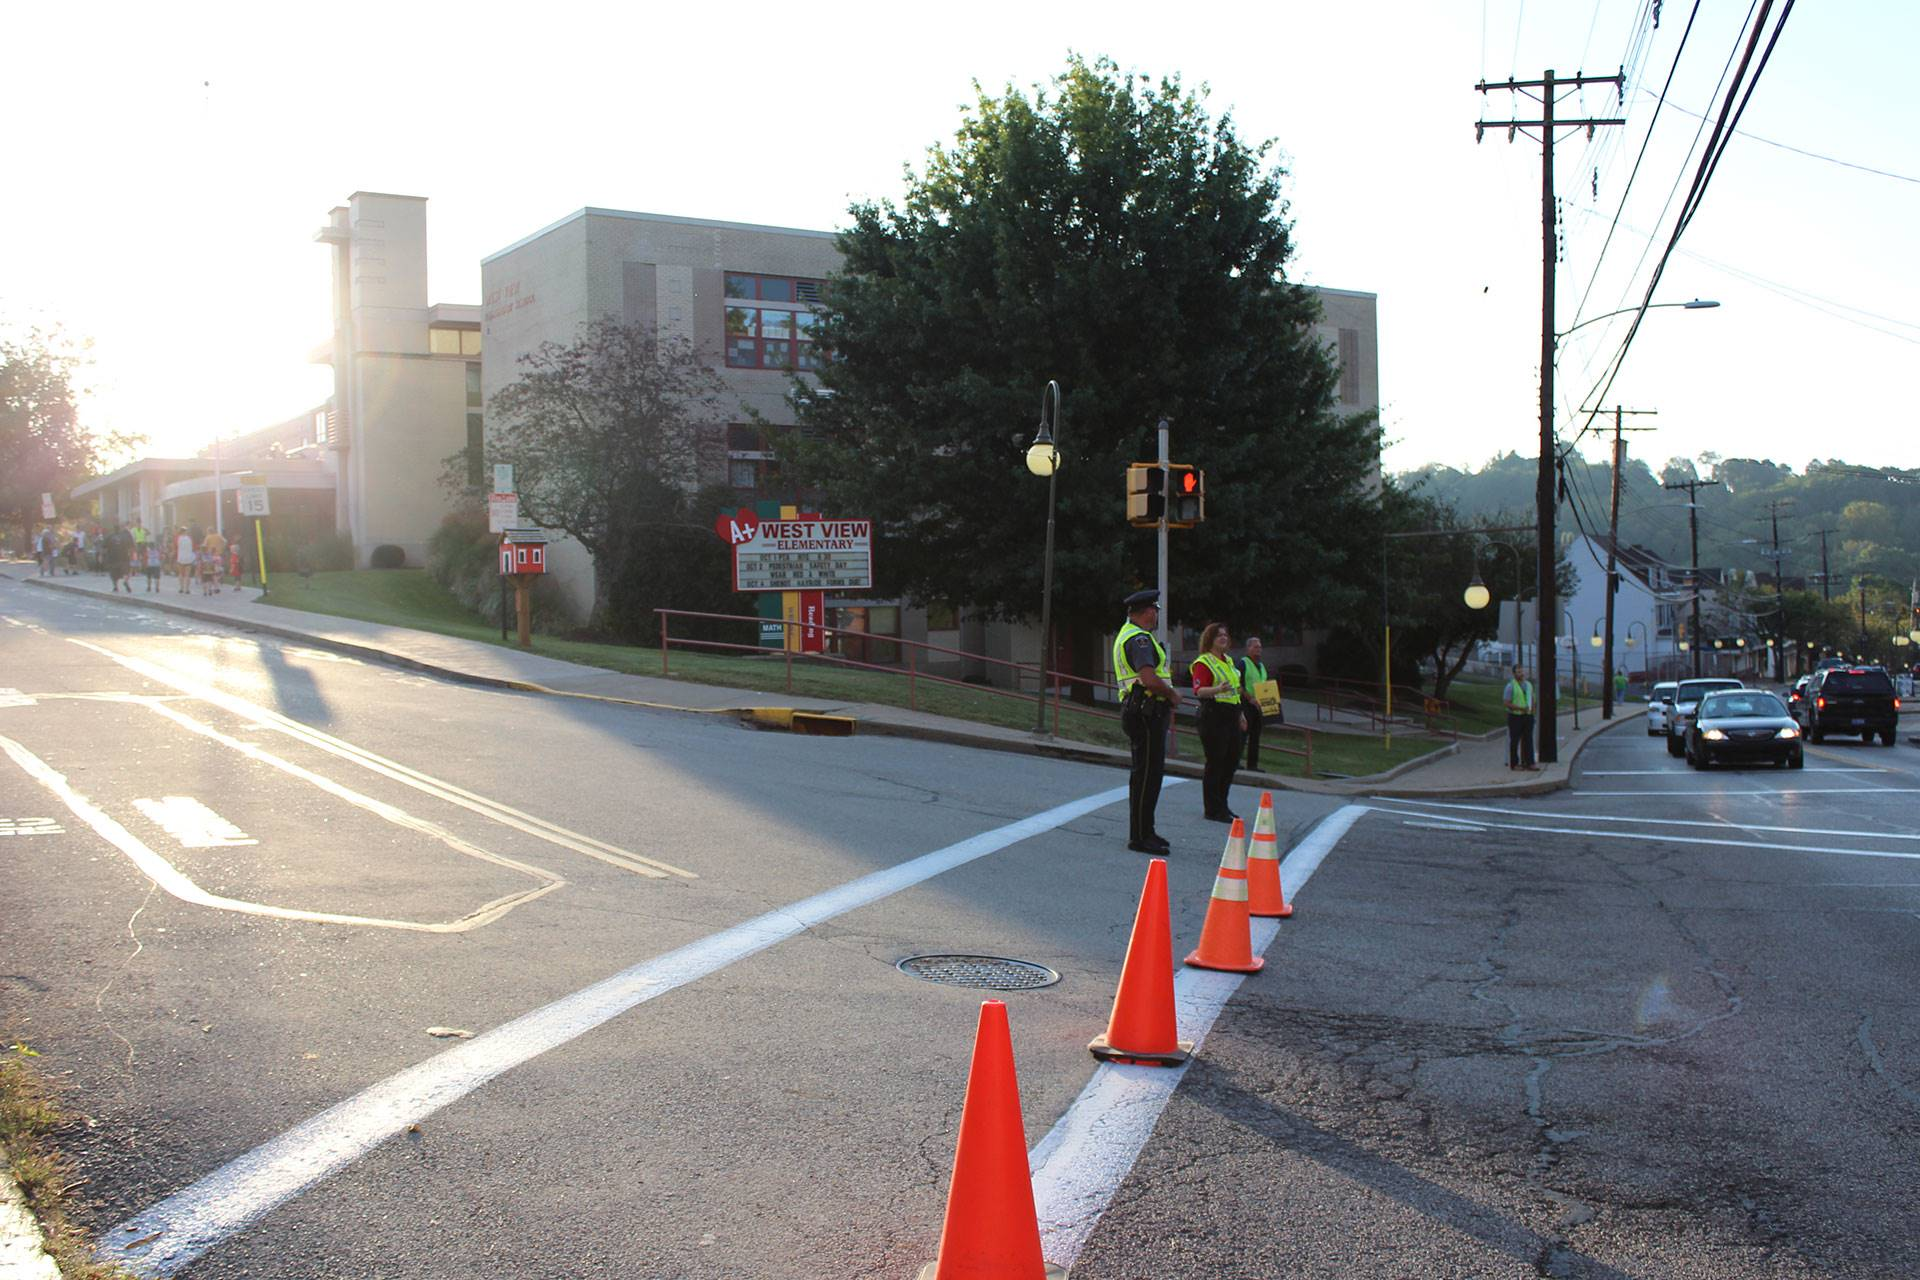 Crossing guards outside of West View Elementary School